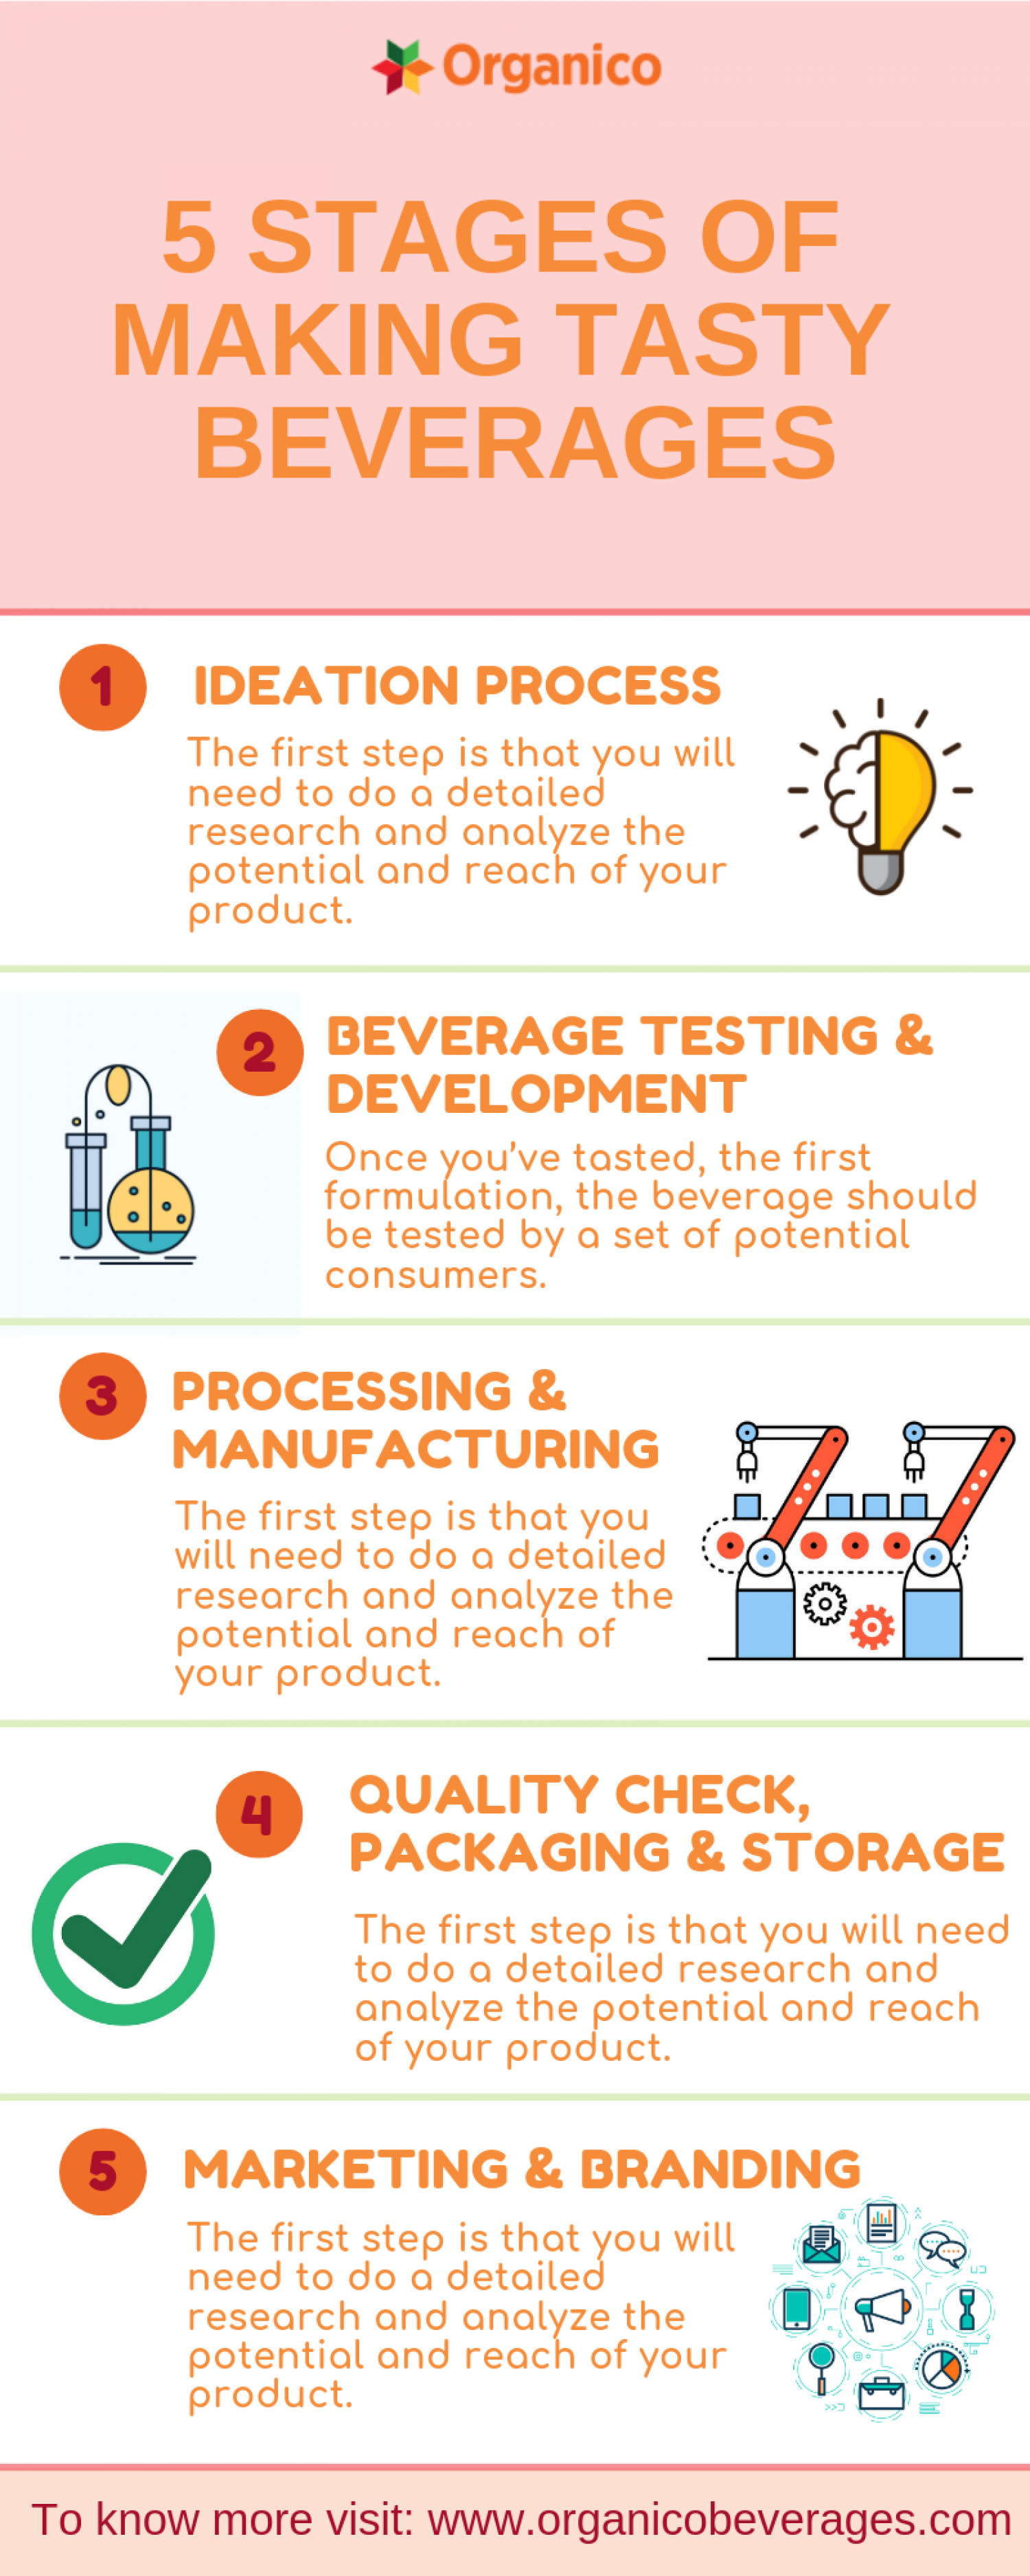 5 Stages of Making Tasty Beverages Infographic